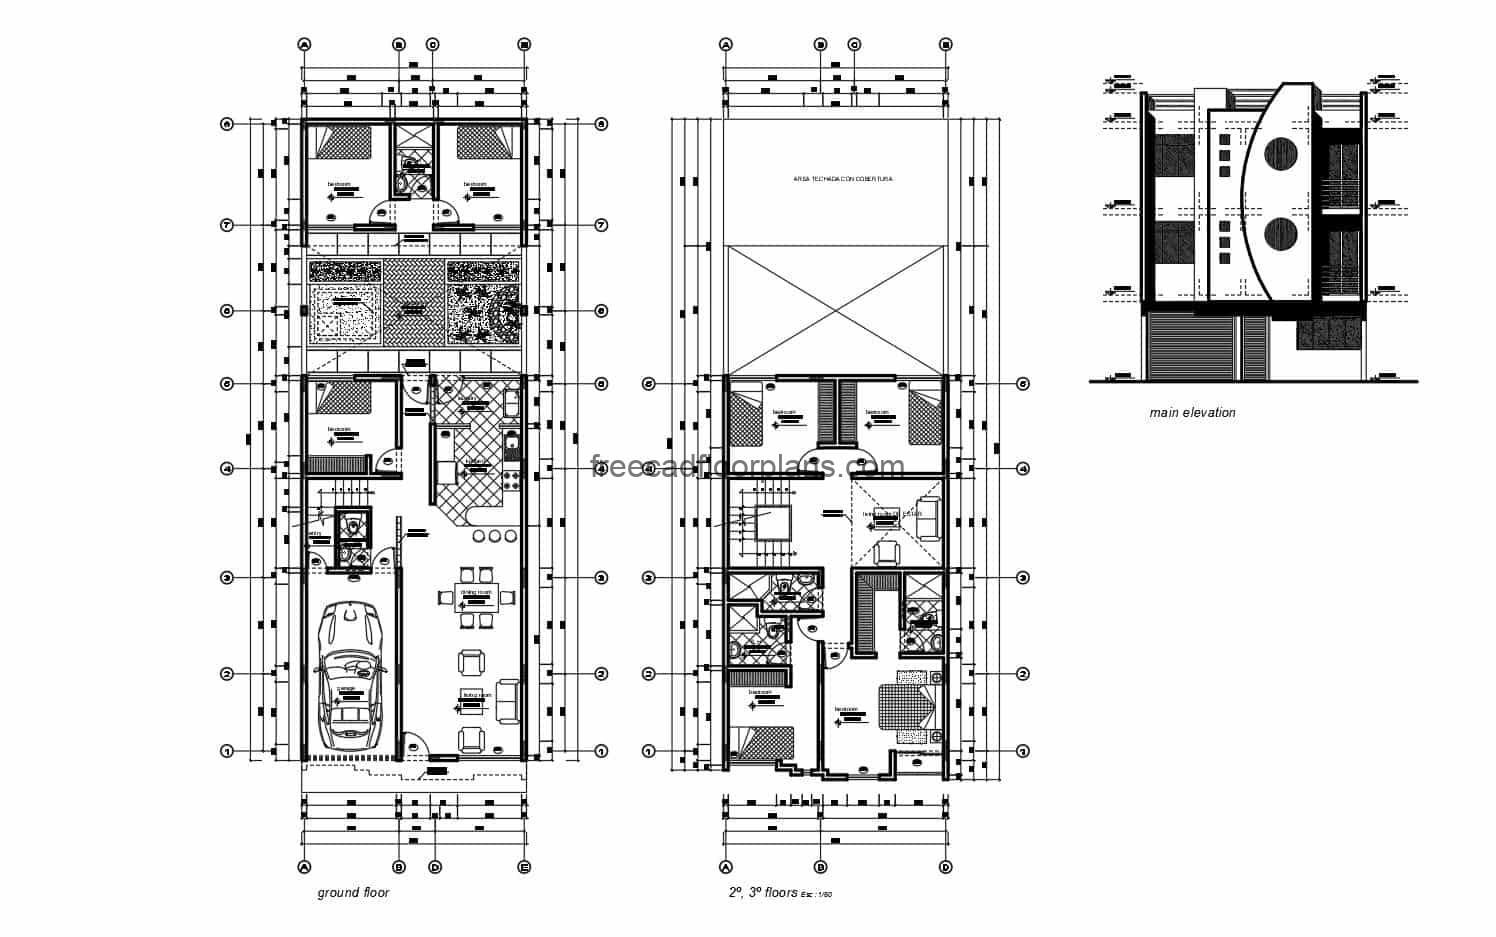 Complete CAD project of plans for a three level residential building, first level basic distribution with garage for one vehicle, living room, kitchen, dining room, three bedrooms and two bathrooms, backyard with laundry area. Second and third level, same distribution with family room, four bedrooms and three bathrooms. Project contains architectural plans, dimensions, facades, sections, electrical plans, sanitary, structural plans, foundation, construction details. CAD plans for free download in Autocad DWG format, with Autocad furniture blocks furnished by interior spaces, dimensioned plans with measures and details.